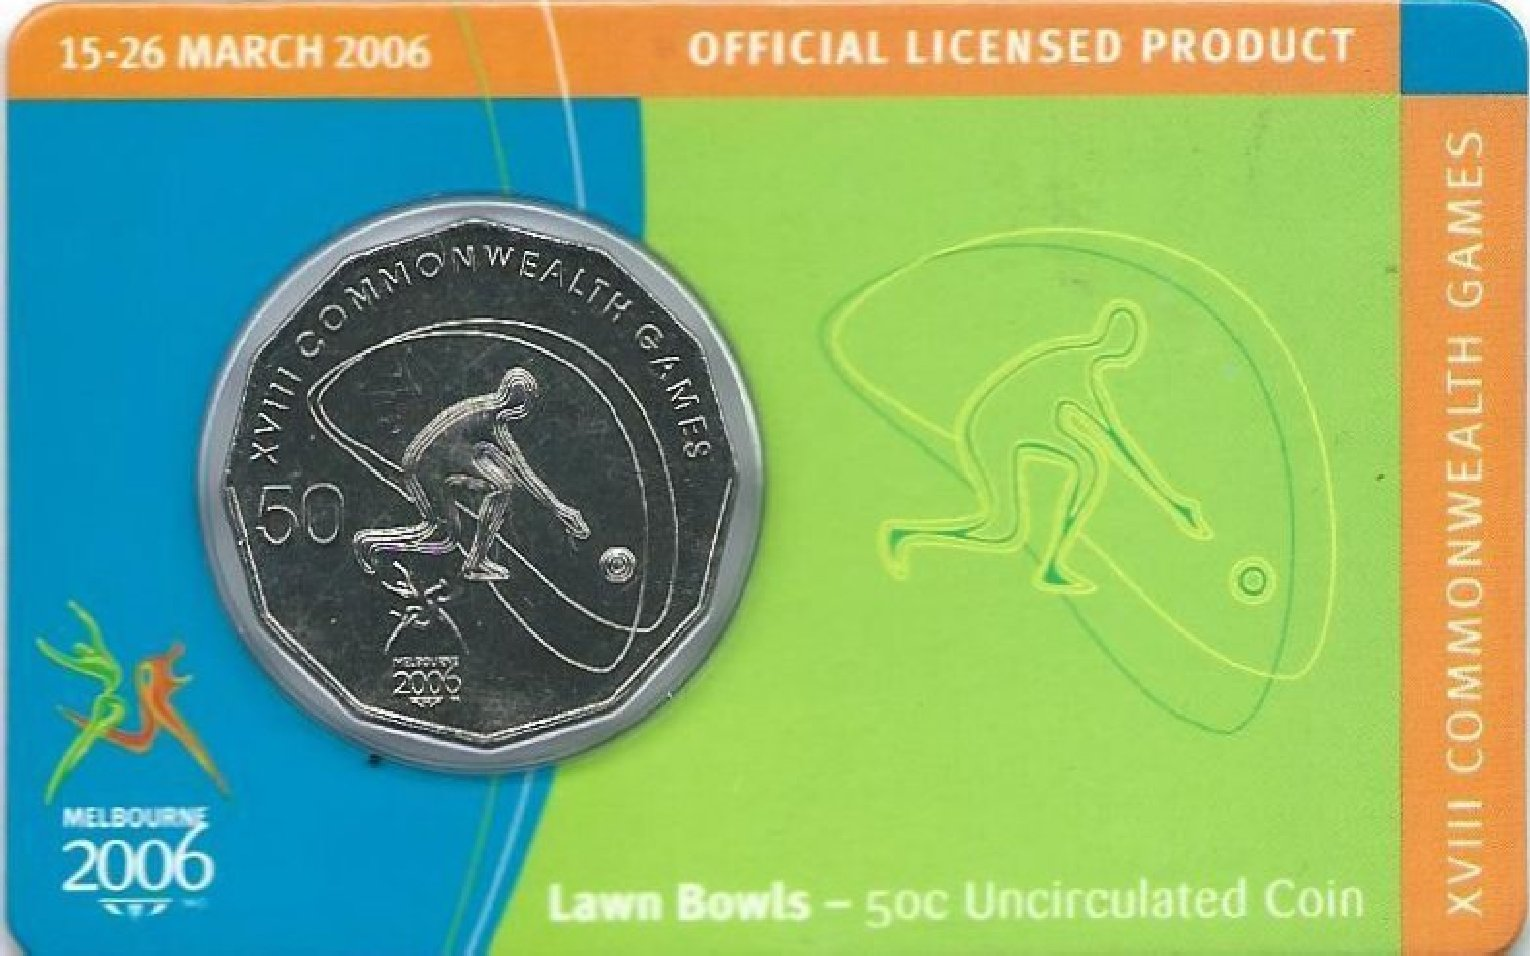 Boxing 2006 Melbourne XVIII Commonwealth Games 50c Uncirculated Coin